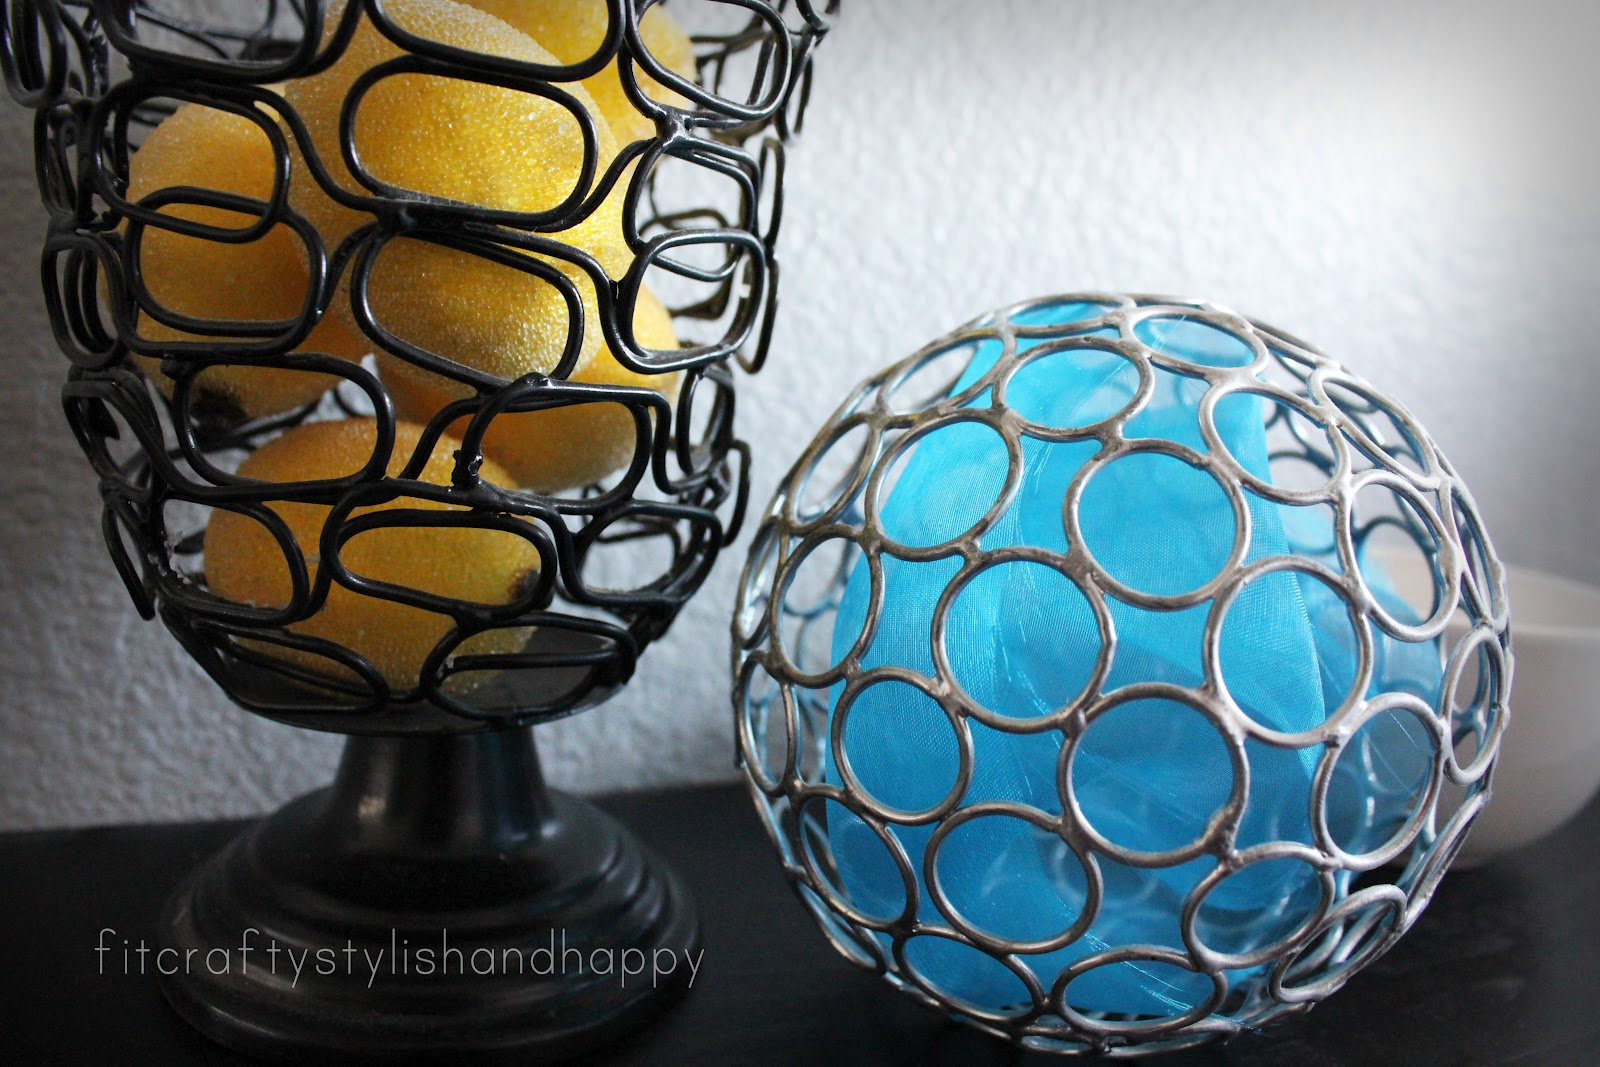 Fit crafty stylish and happy guest bathroom makeover for Yellow and blue bathroom accessories